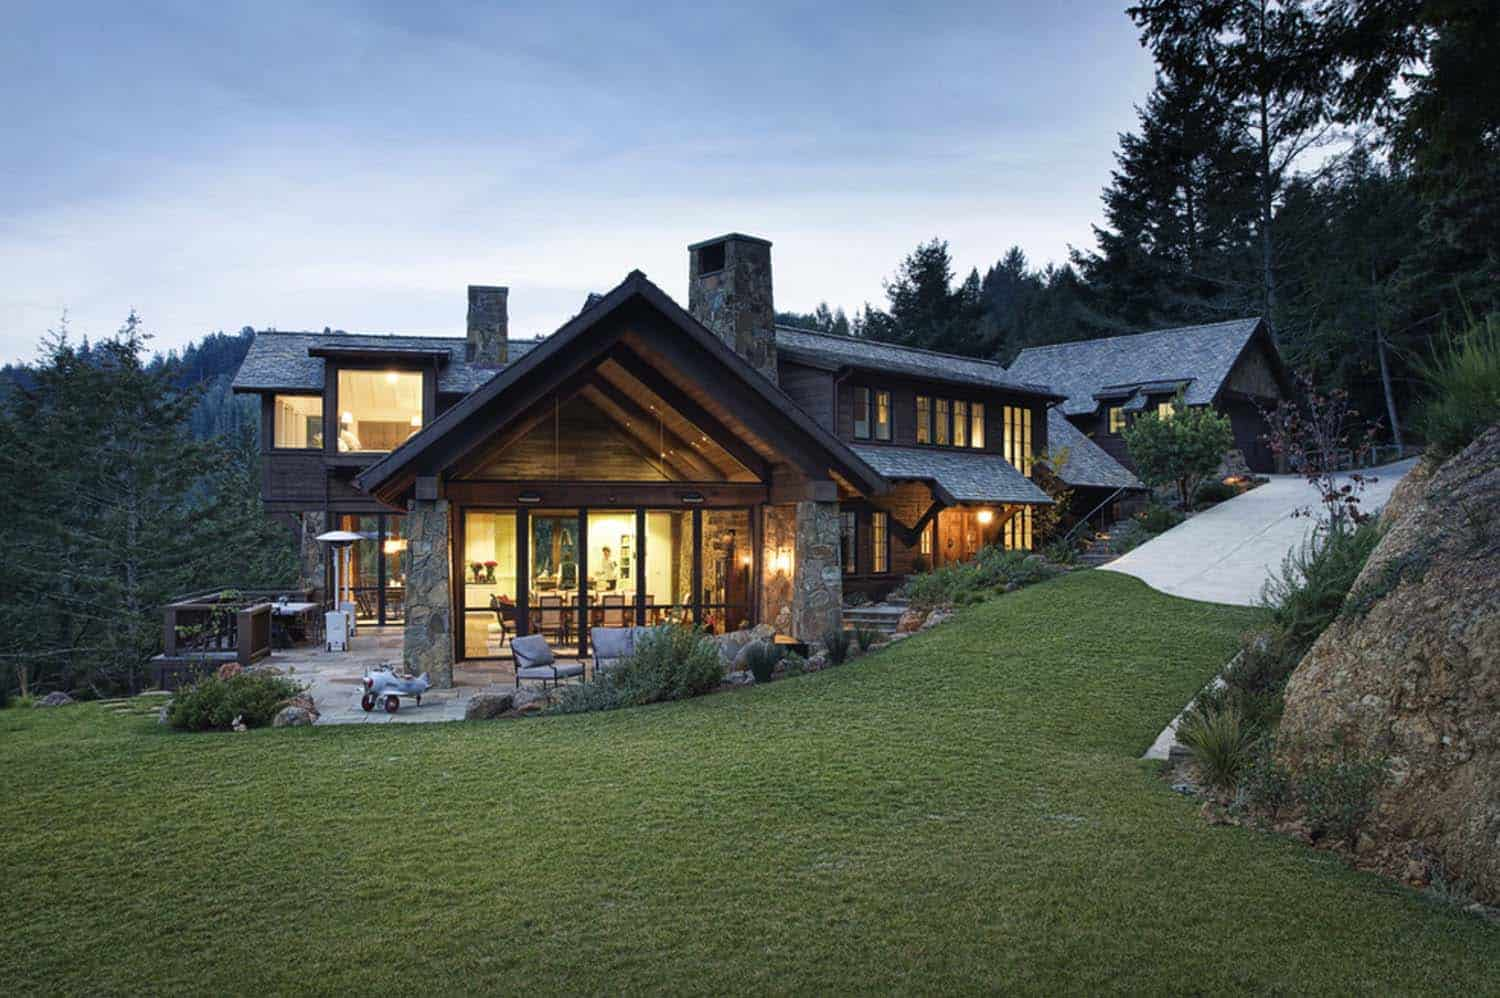 mountain-lodge-rustic-exterior